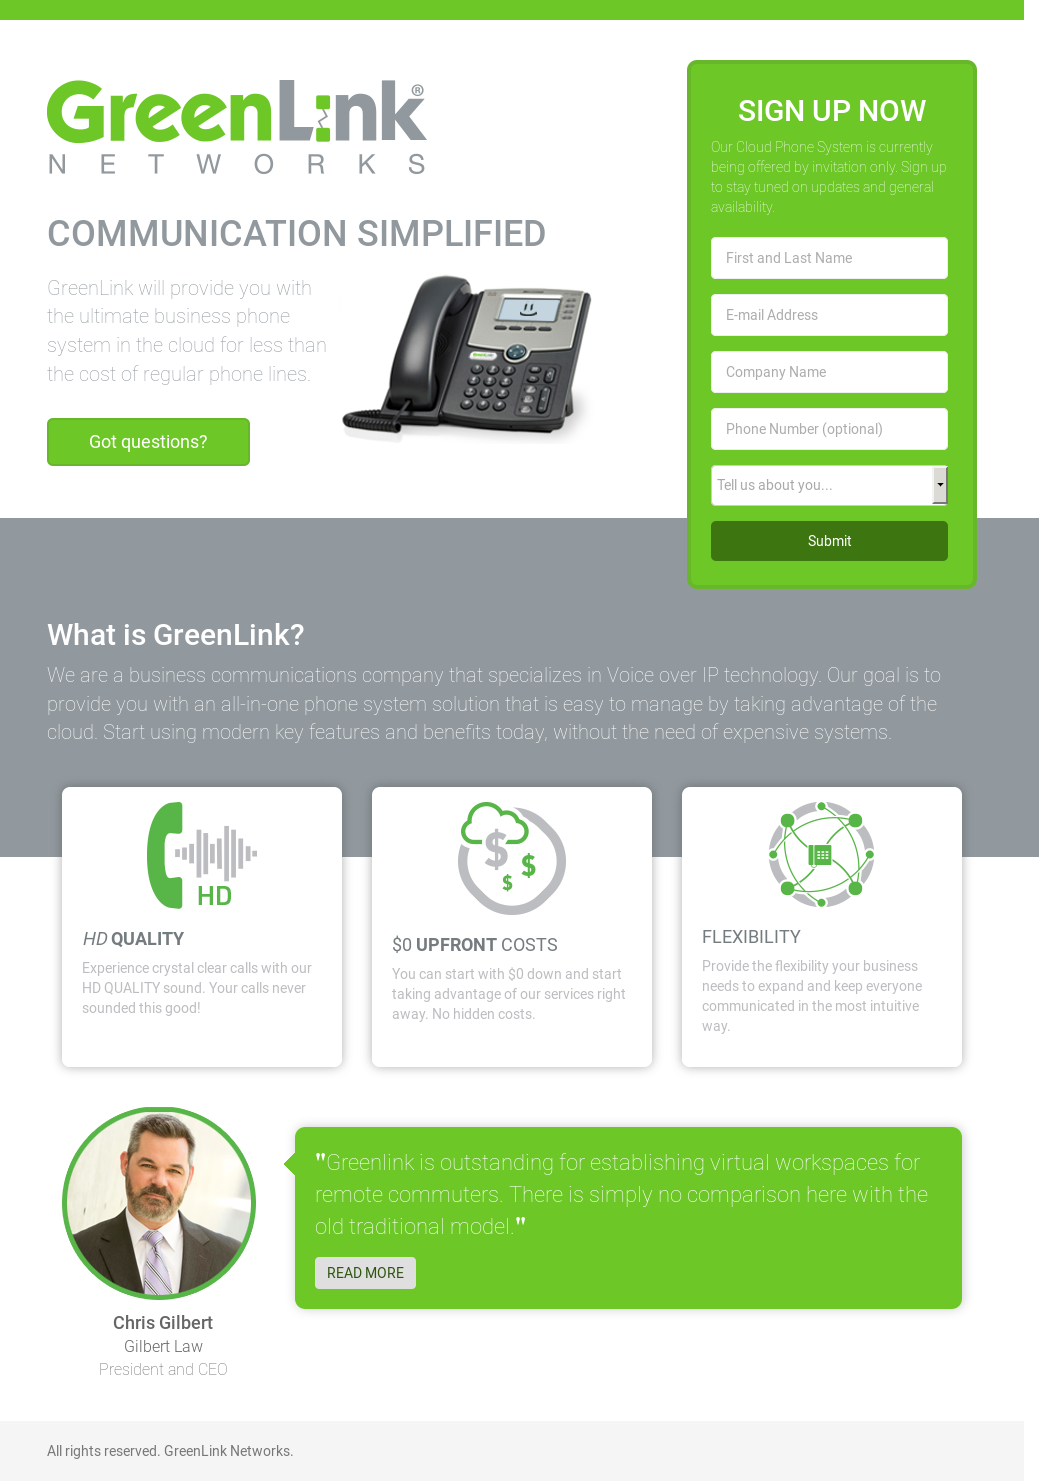 GREENLINK NETWORKS Competitors, Revenue and Employees